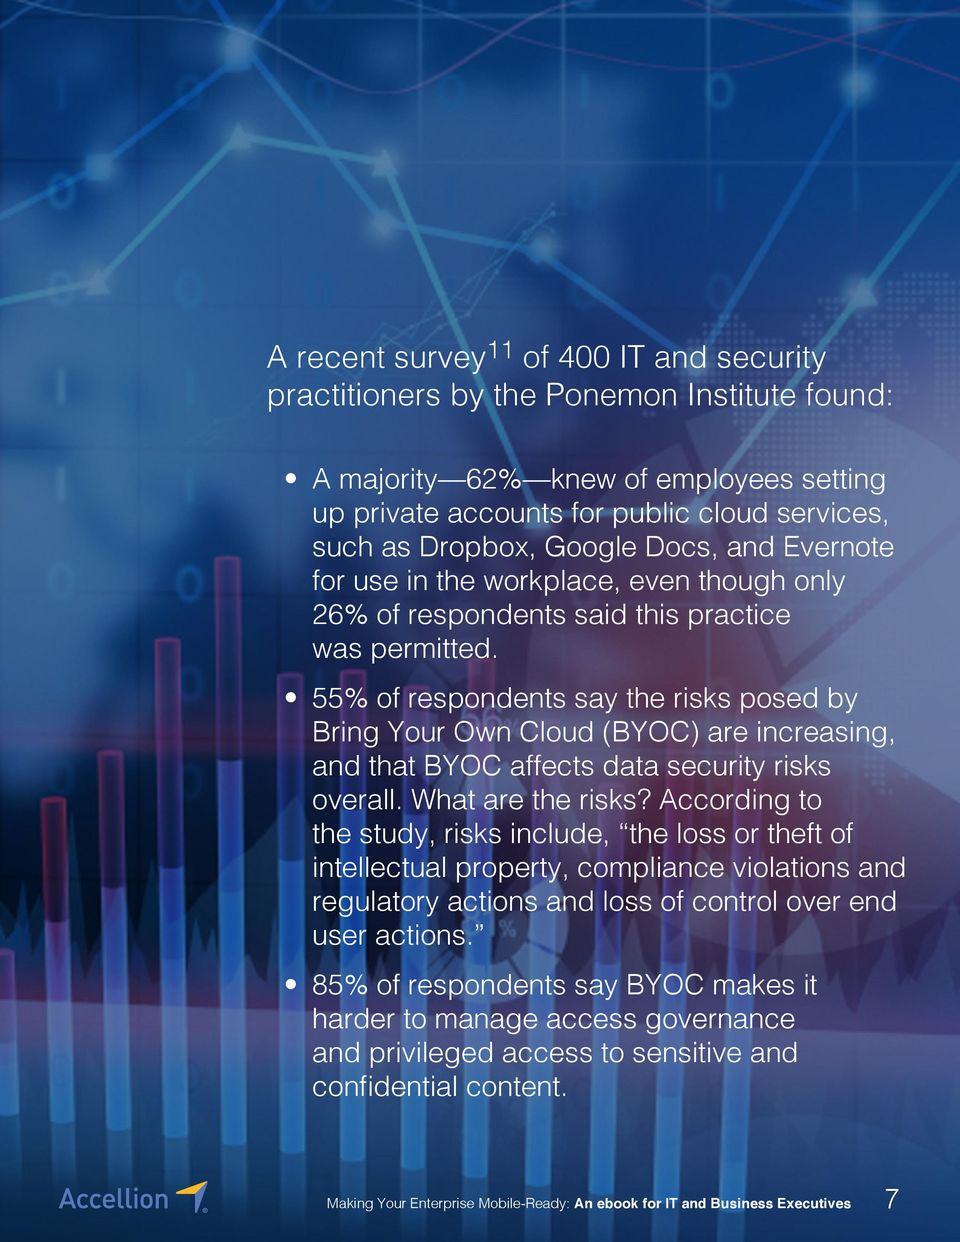 55% of respondents say the risks posed by Bring Your Own Cloud (BYOC) are increasing, and that BYOC affects data security risks overall. What are the risks?